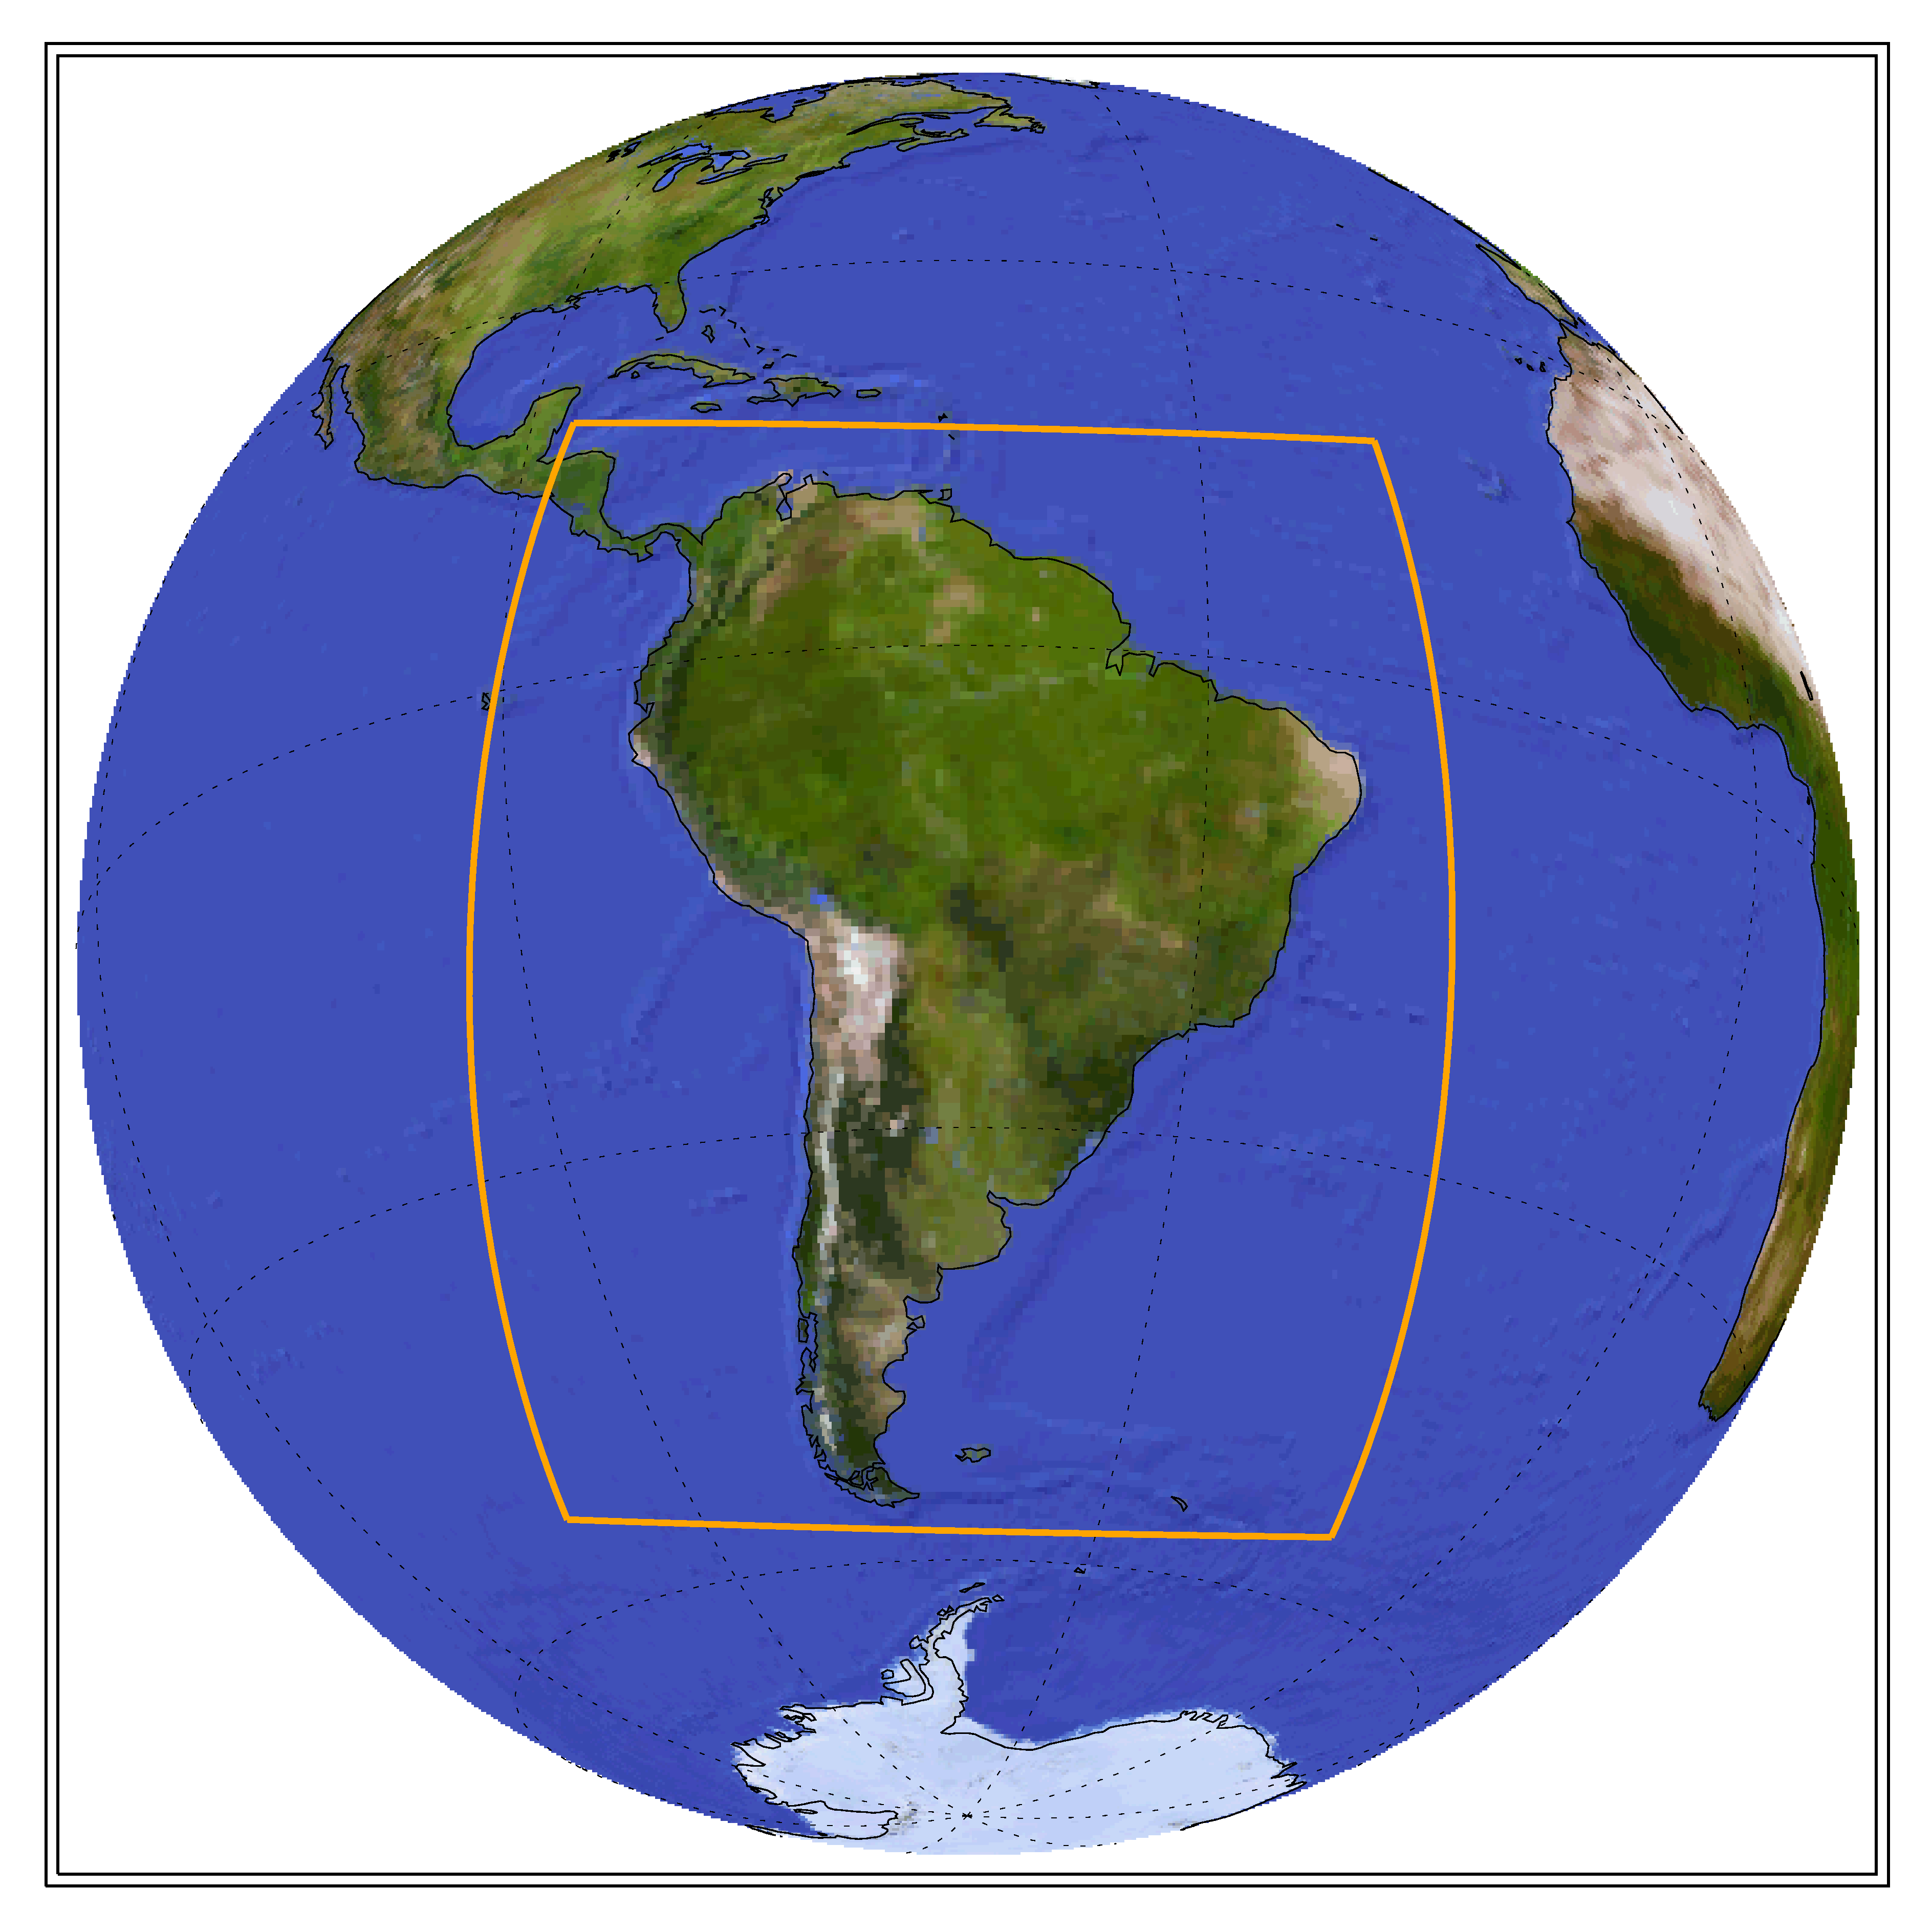 Globe showing the CORDEX domain of South America